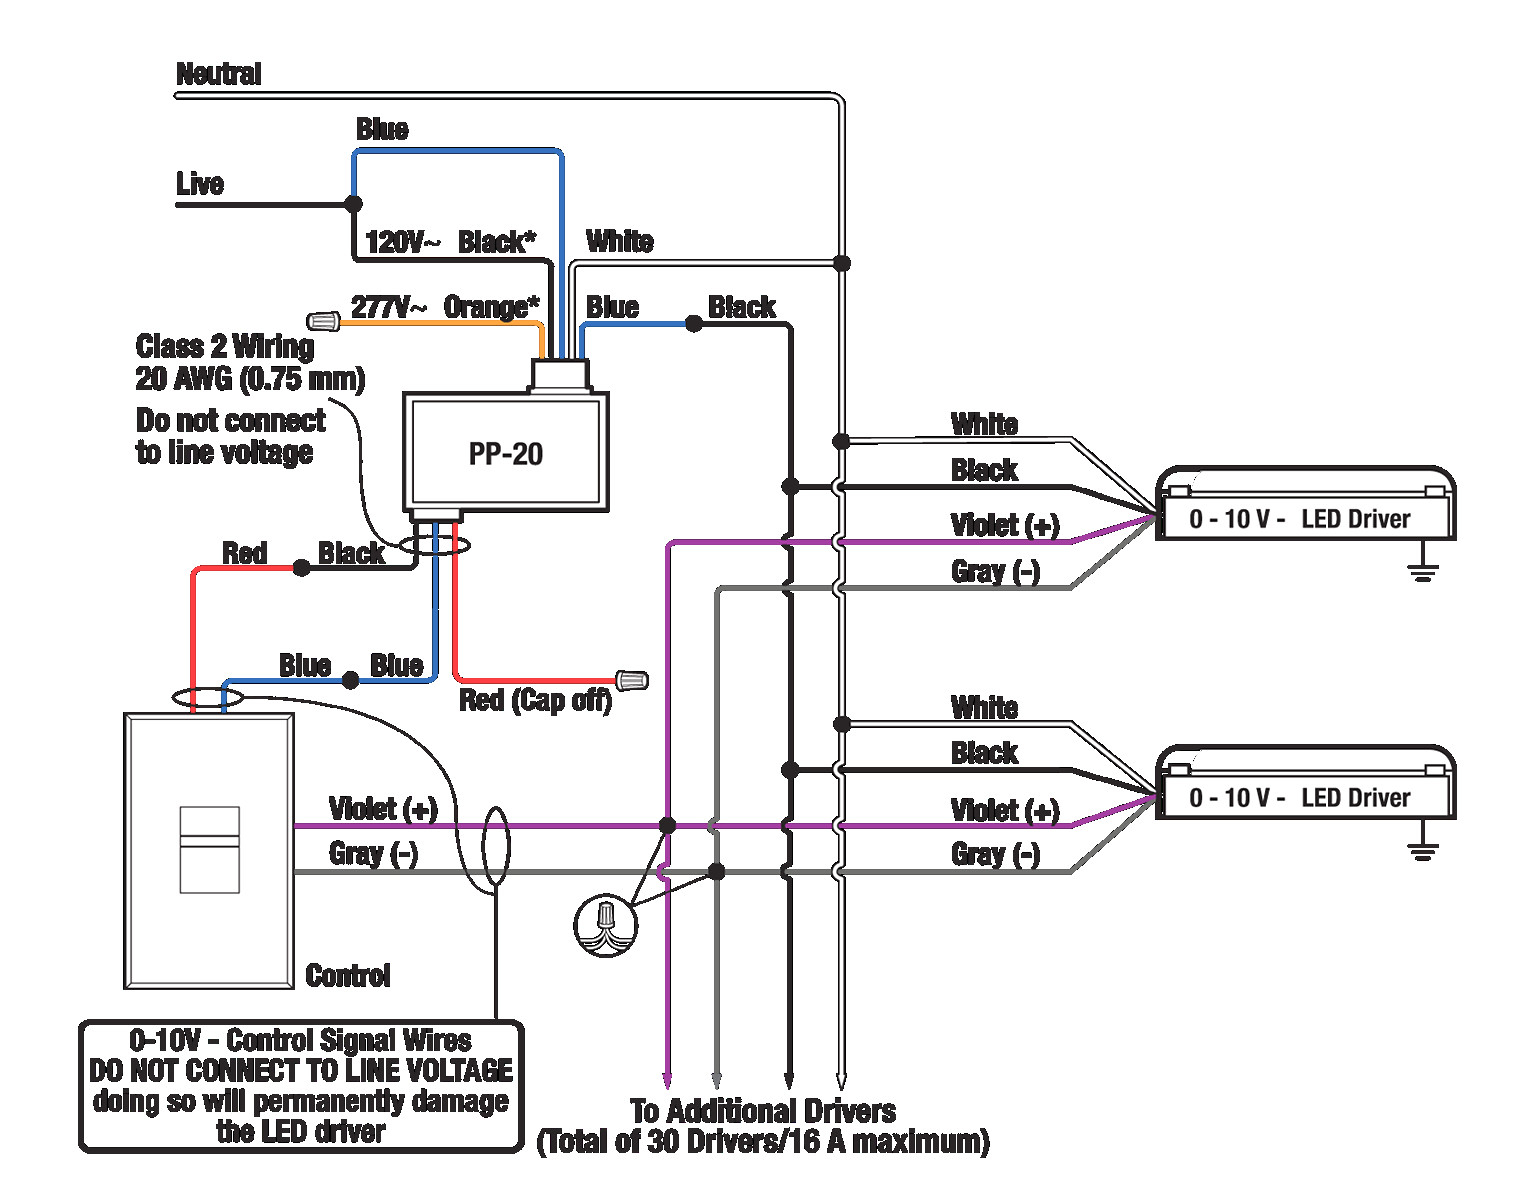 hight resolution of ws f167 toyotascionxdelectricalwiringdiagraml20082010a3687 wiringled 110v wiring diagram wiring diagram g9 led 110v wiring diagram wiring diagrams